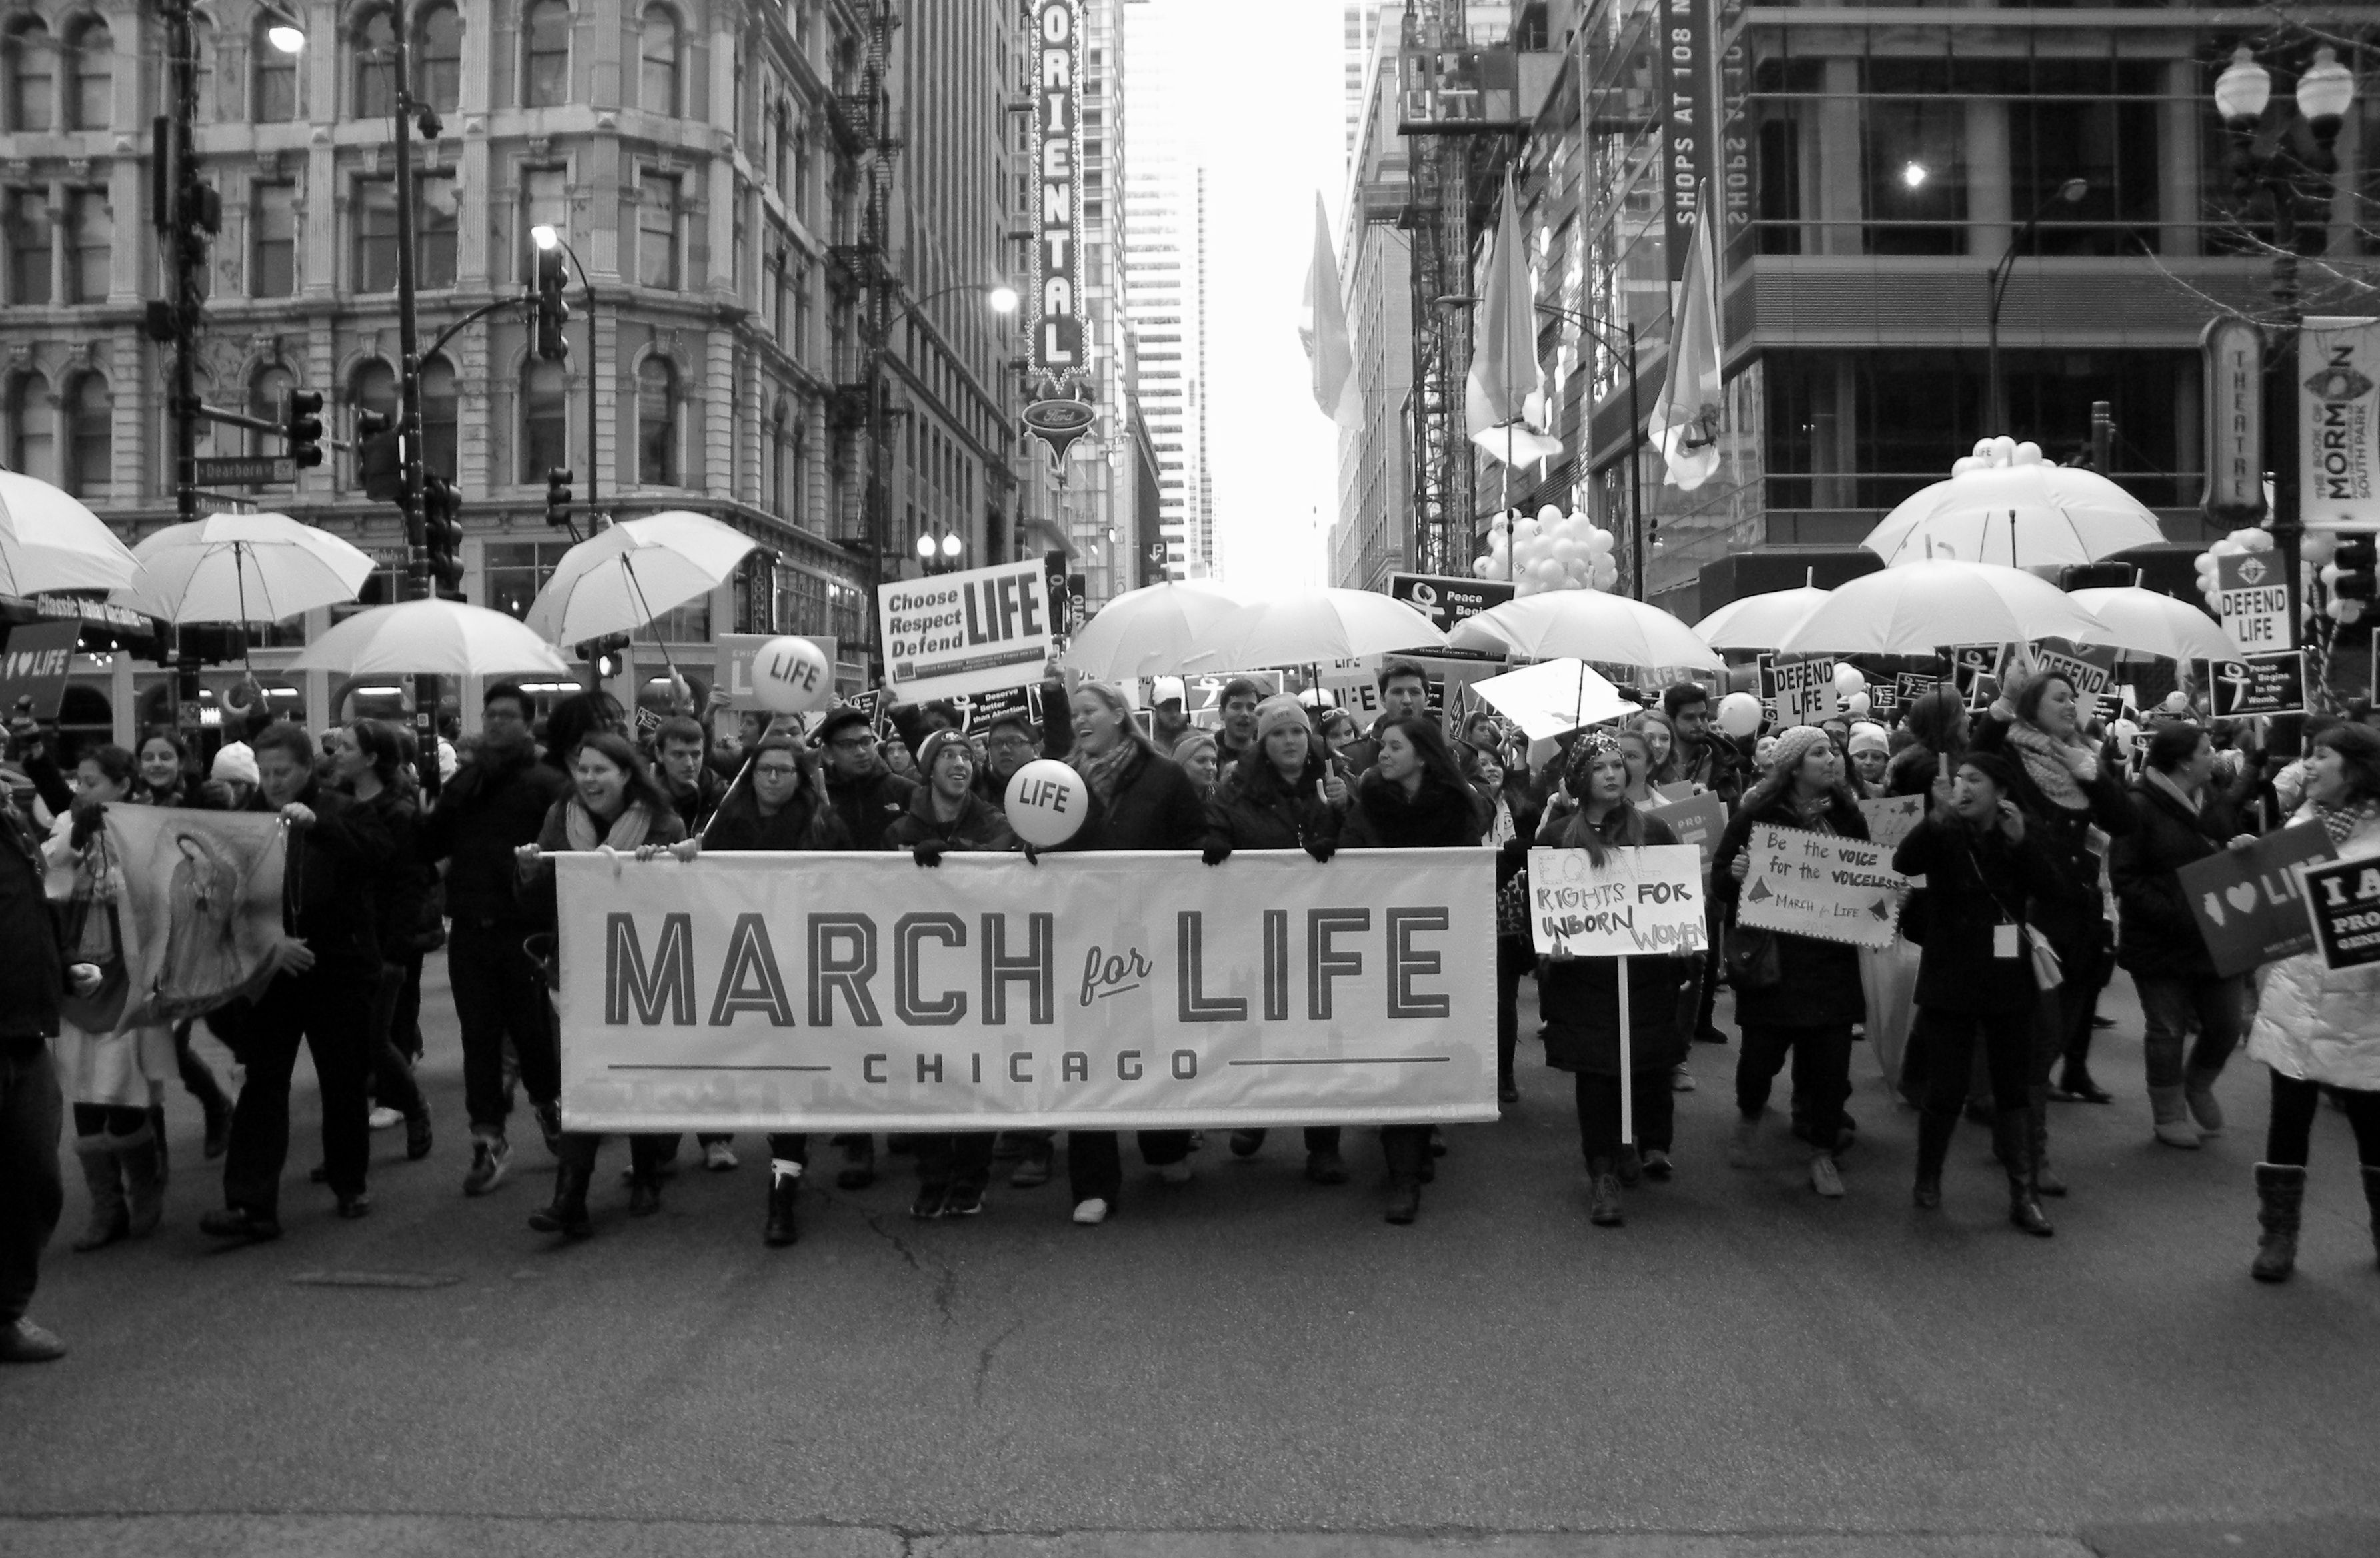 Chicago S March For Life 2015 Pro Life Marchers Take To The Streets Of Downtown Chicago To Celebrate Life Downtown Chicago Life Celebration Of Life